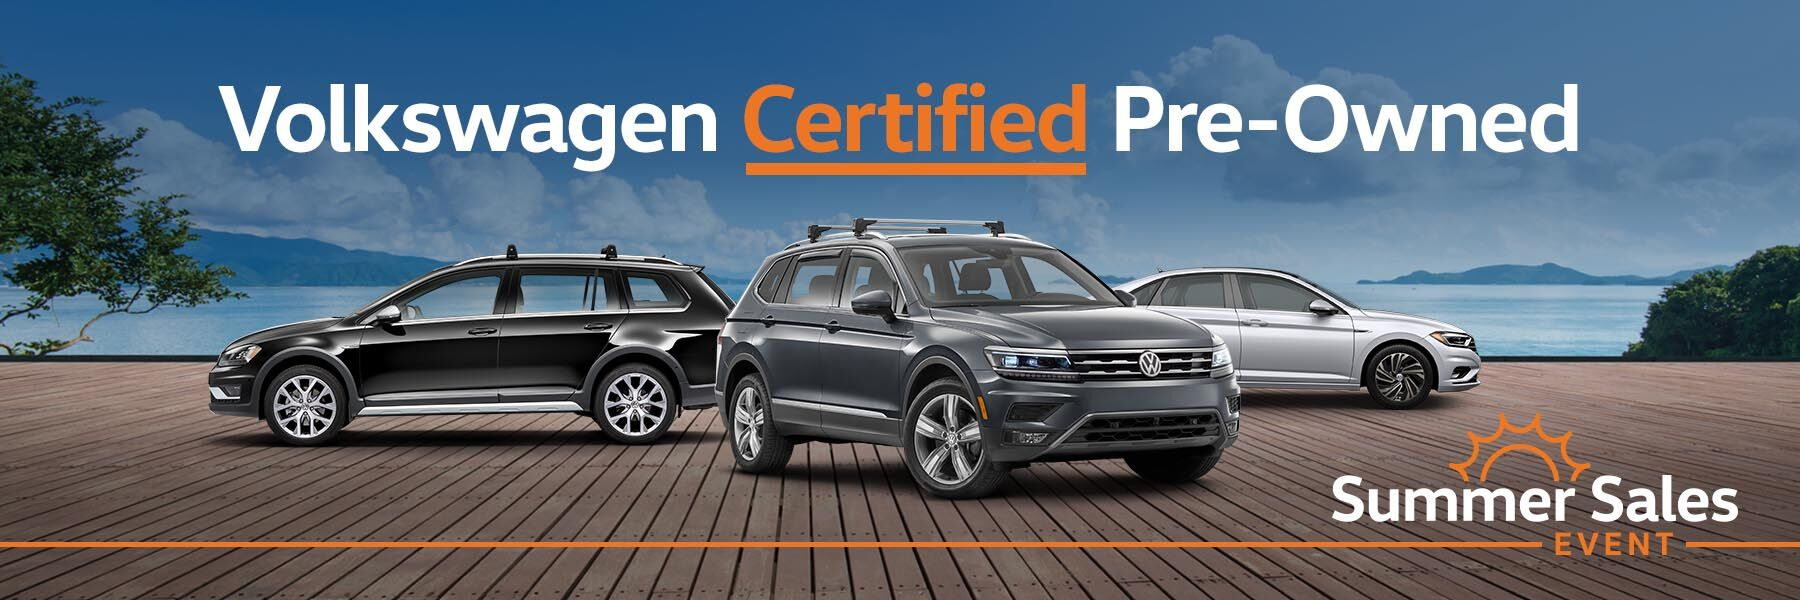 Volkswagen Certified Pre-Owned in Thousand Oaks, CA